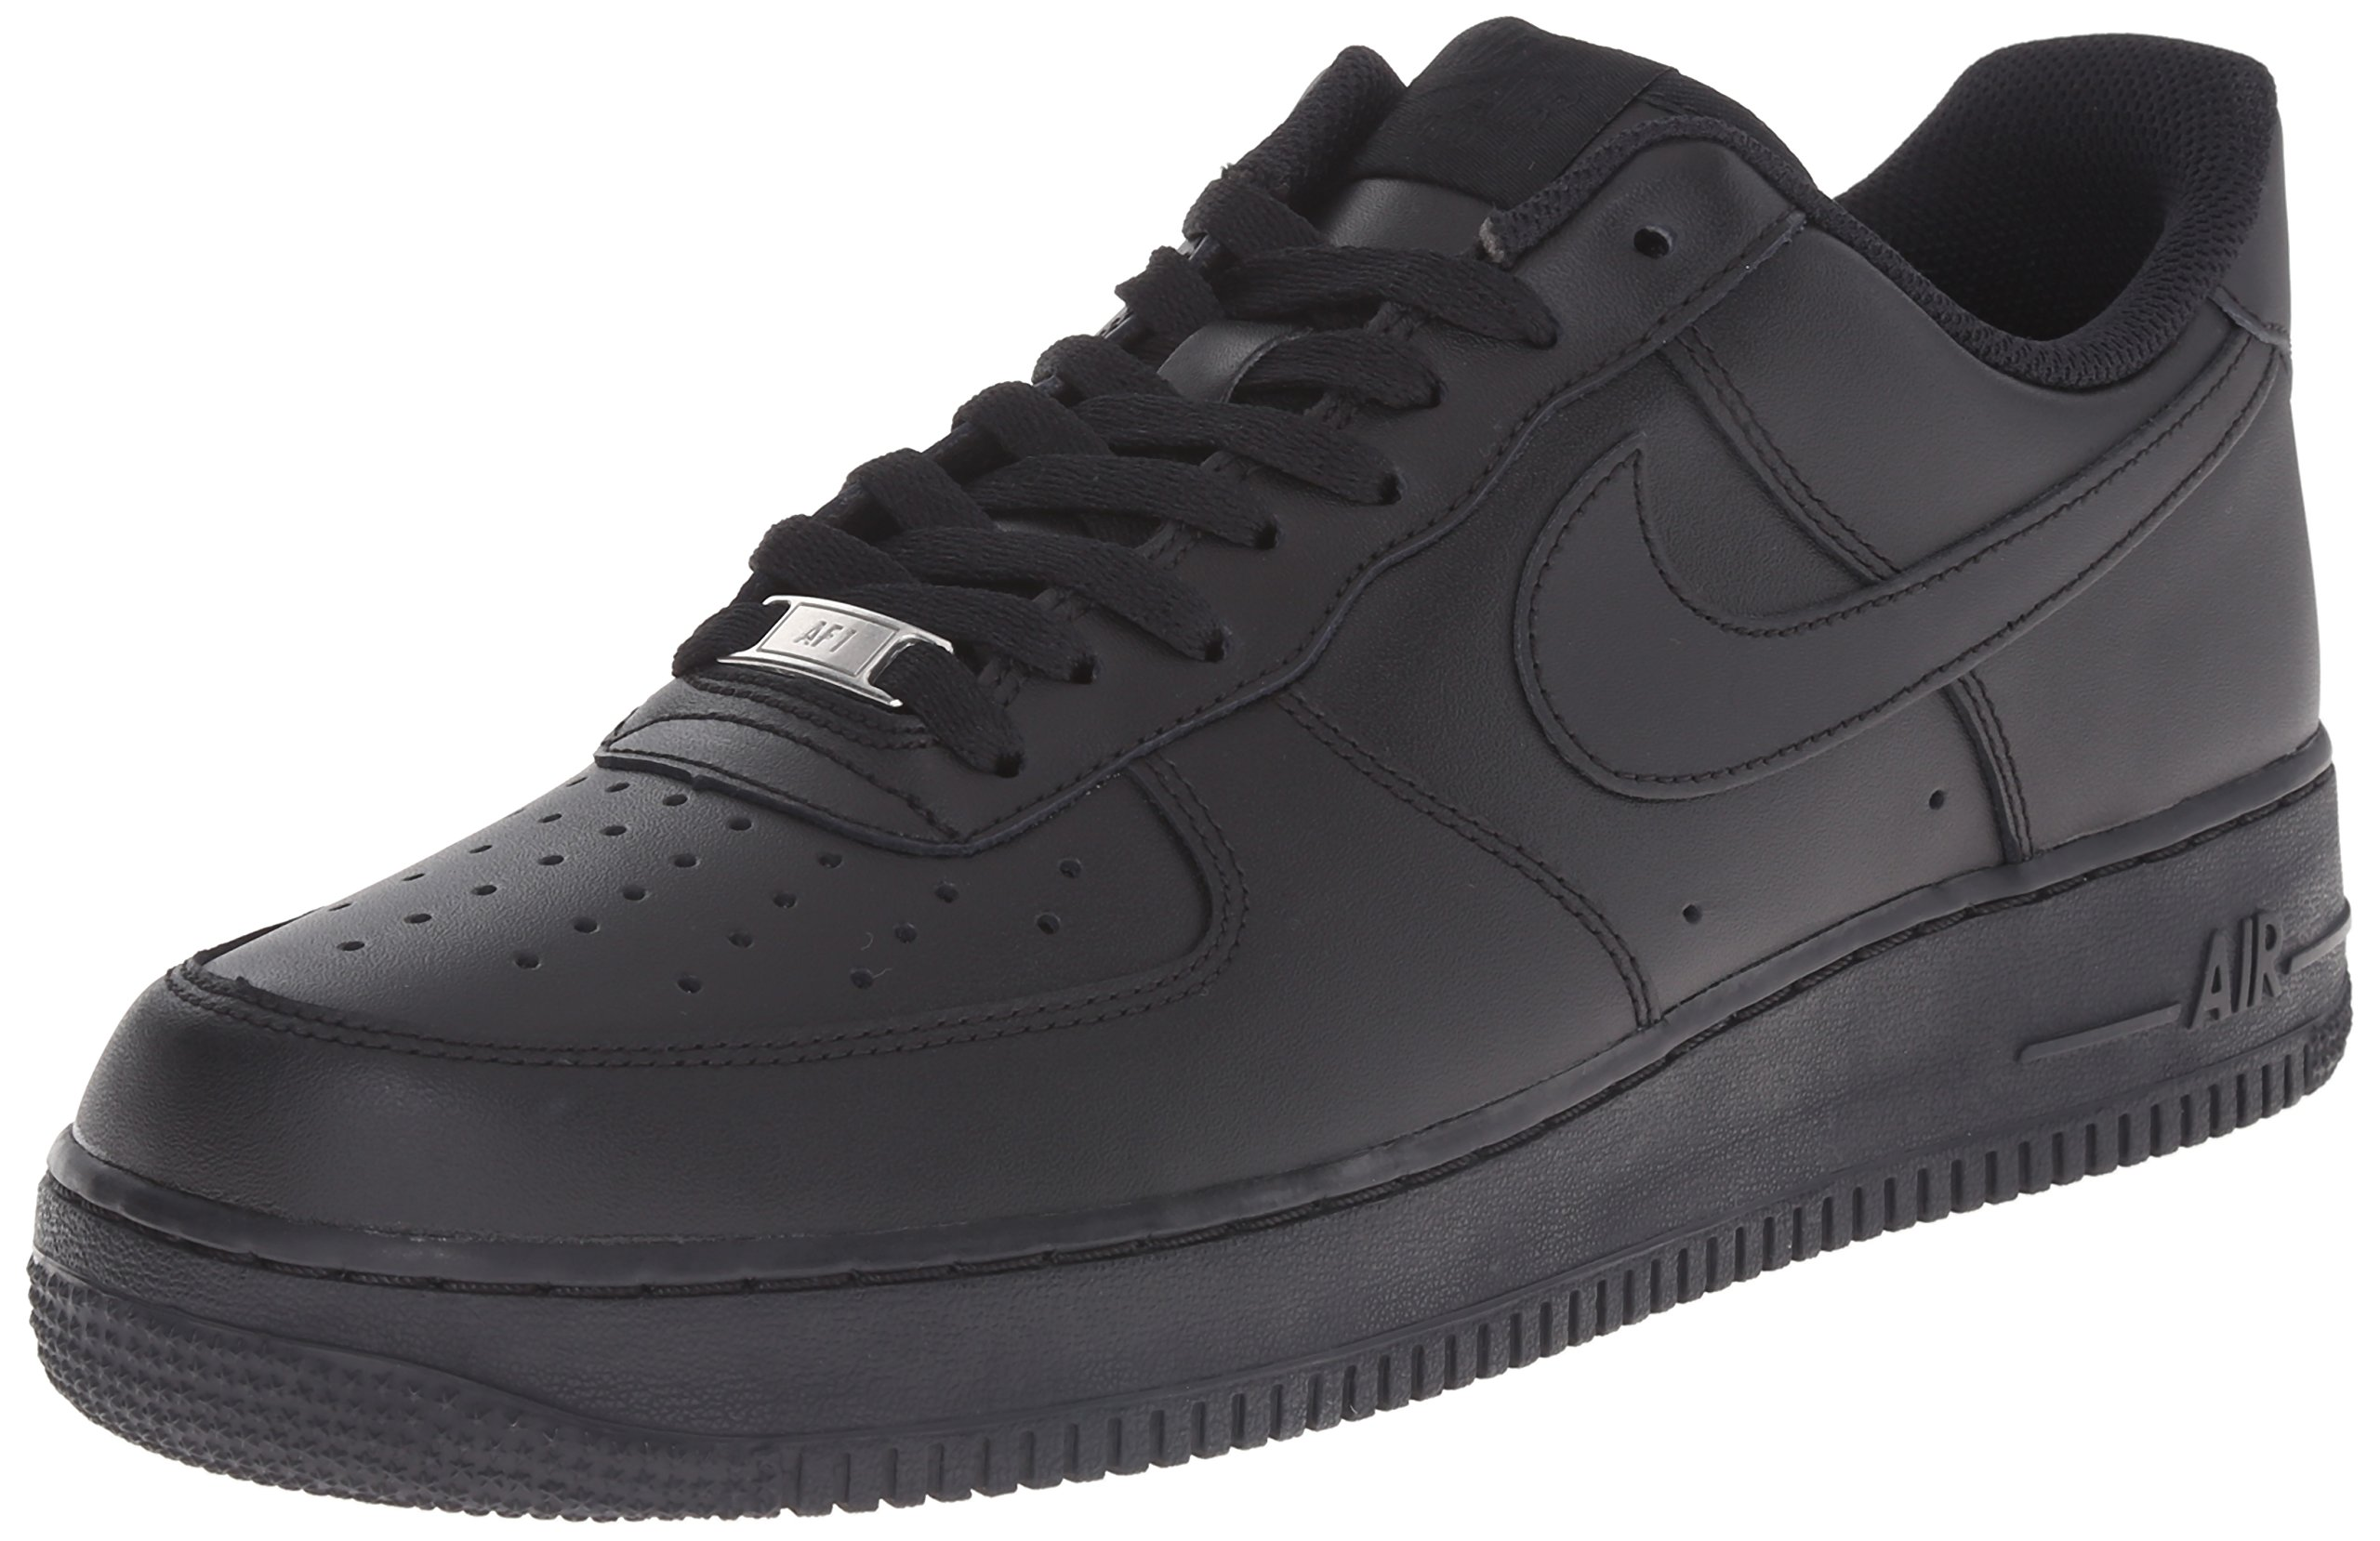 Nike Mens Air Force 1 Low 07 Basketball Shoes Black/Black 315122-001 Size 12 by Nike